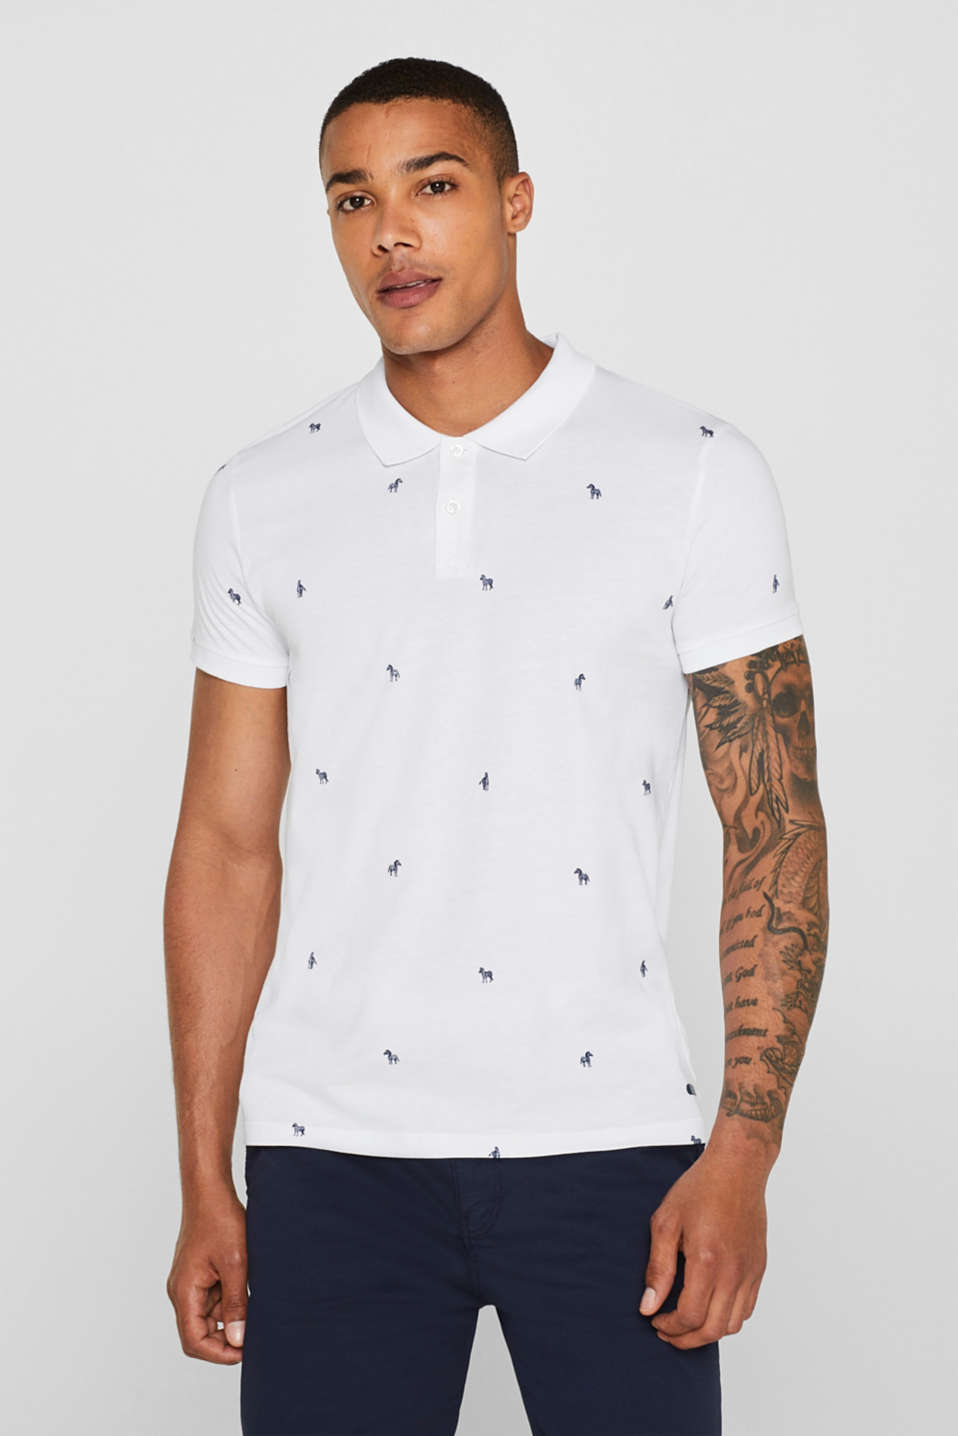 edc - Jersey polo shirt with print, 100% cotton